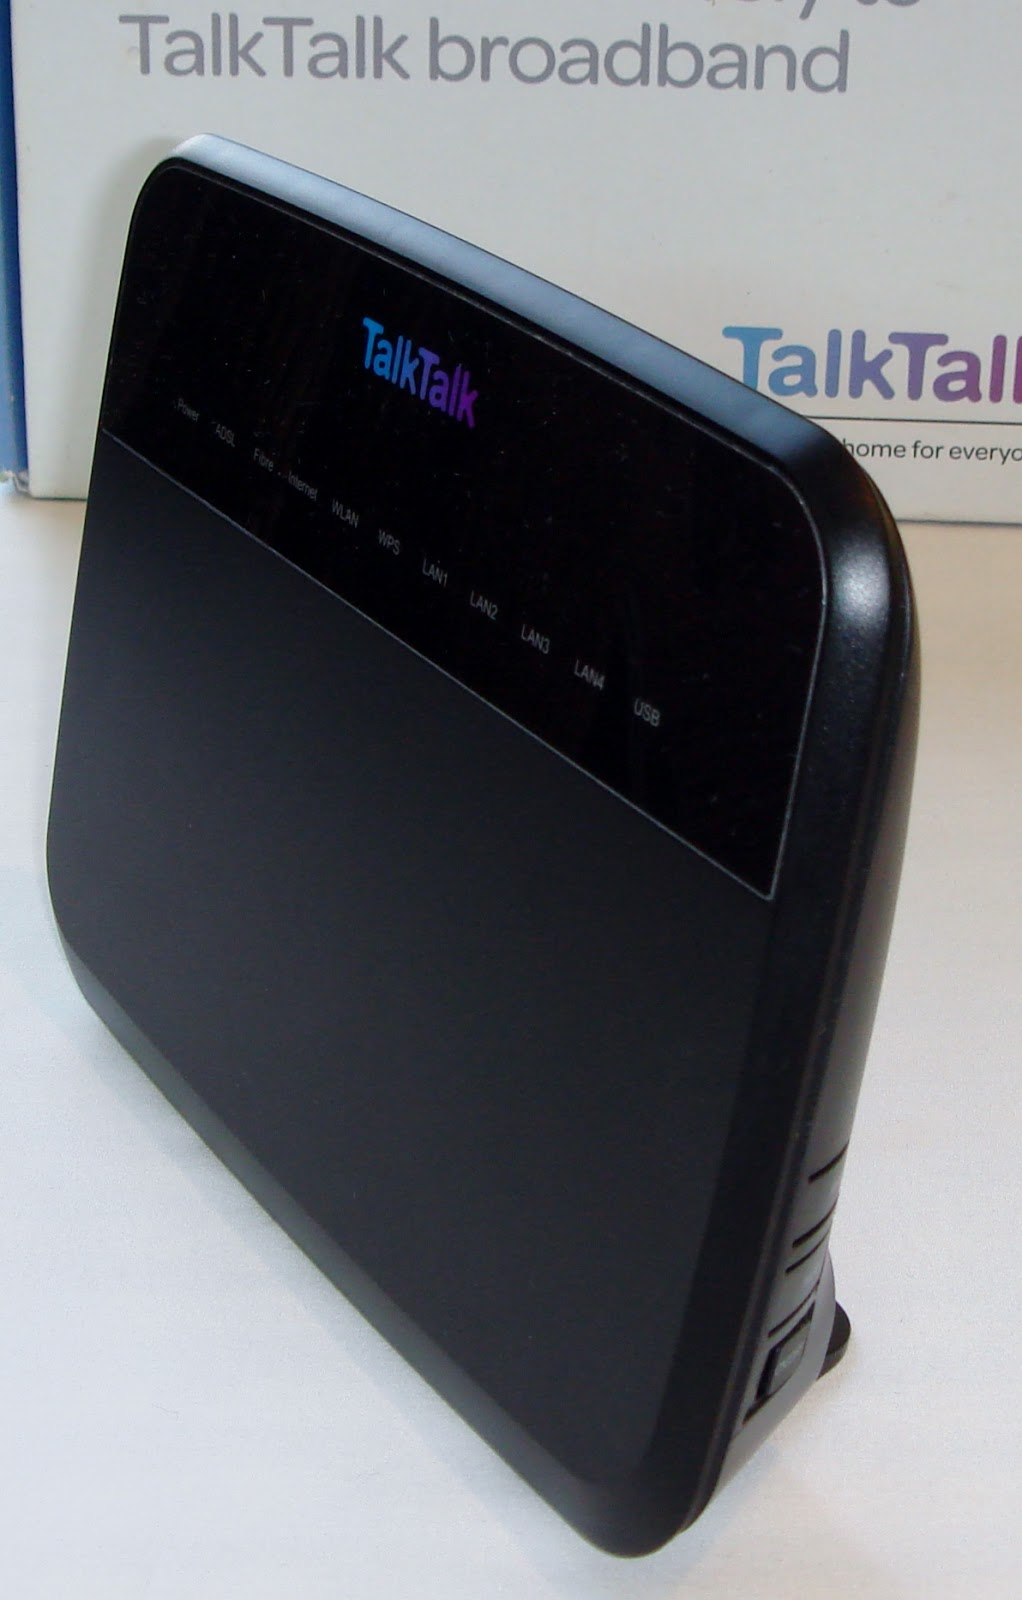 Talktalk D-Link Dsl-3780 Info And Use With Other Isps-3320